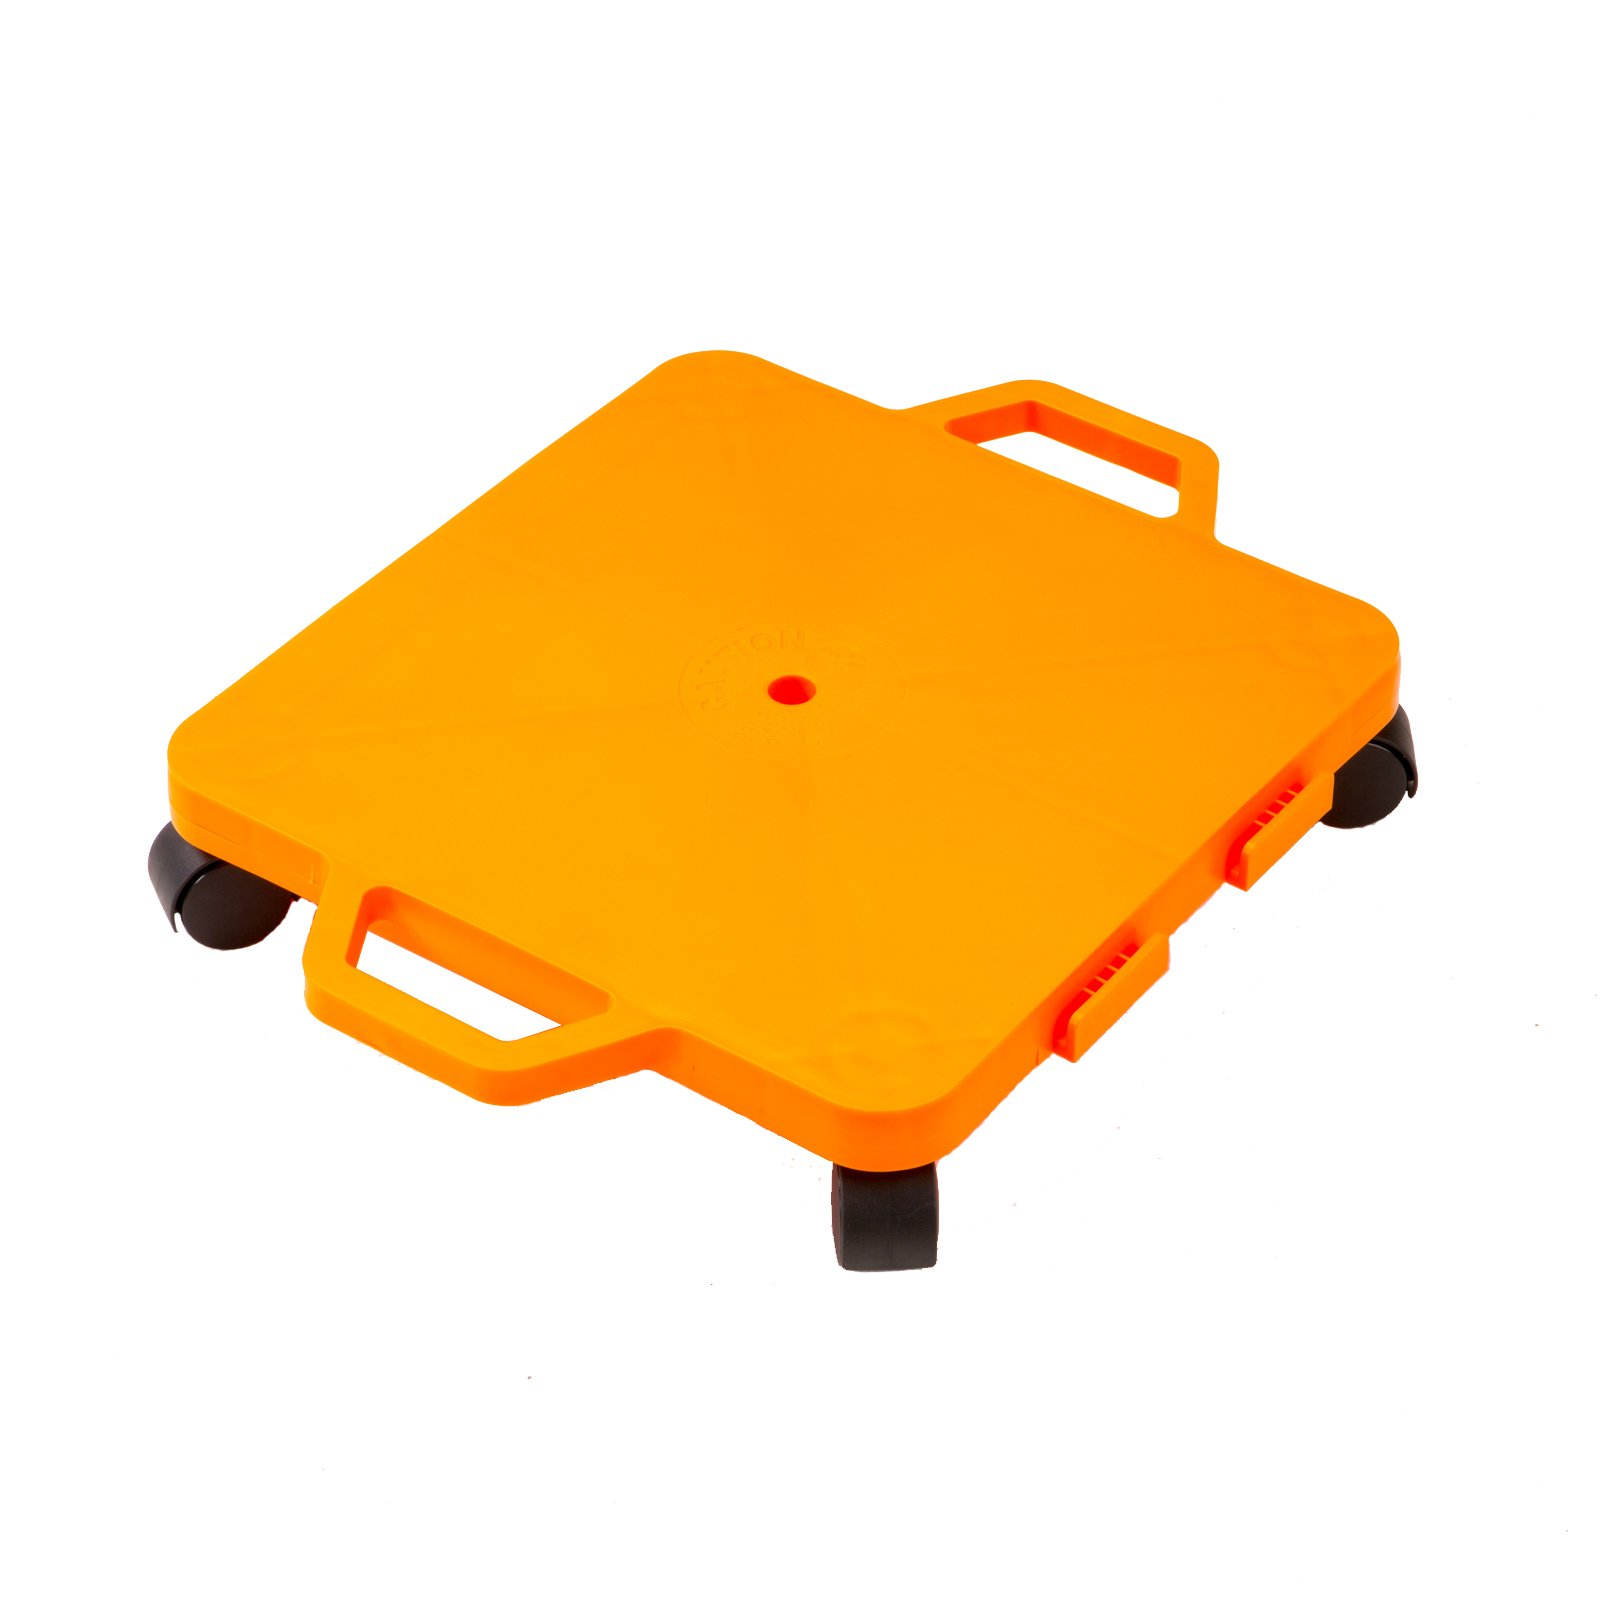 Cosom Scooter Board, 16 Inch Children's Sit & Scoot Board with 2 Inch Non-Marring Nylon Casters & Safety Guards for Physical Education Class, Sliding Boards with Safety Handles, Orange